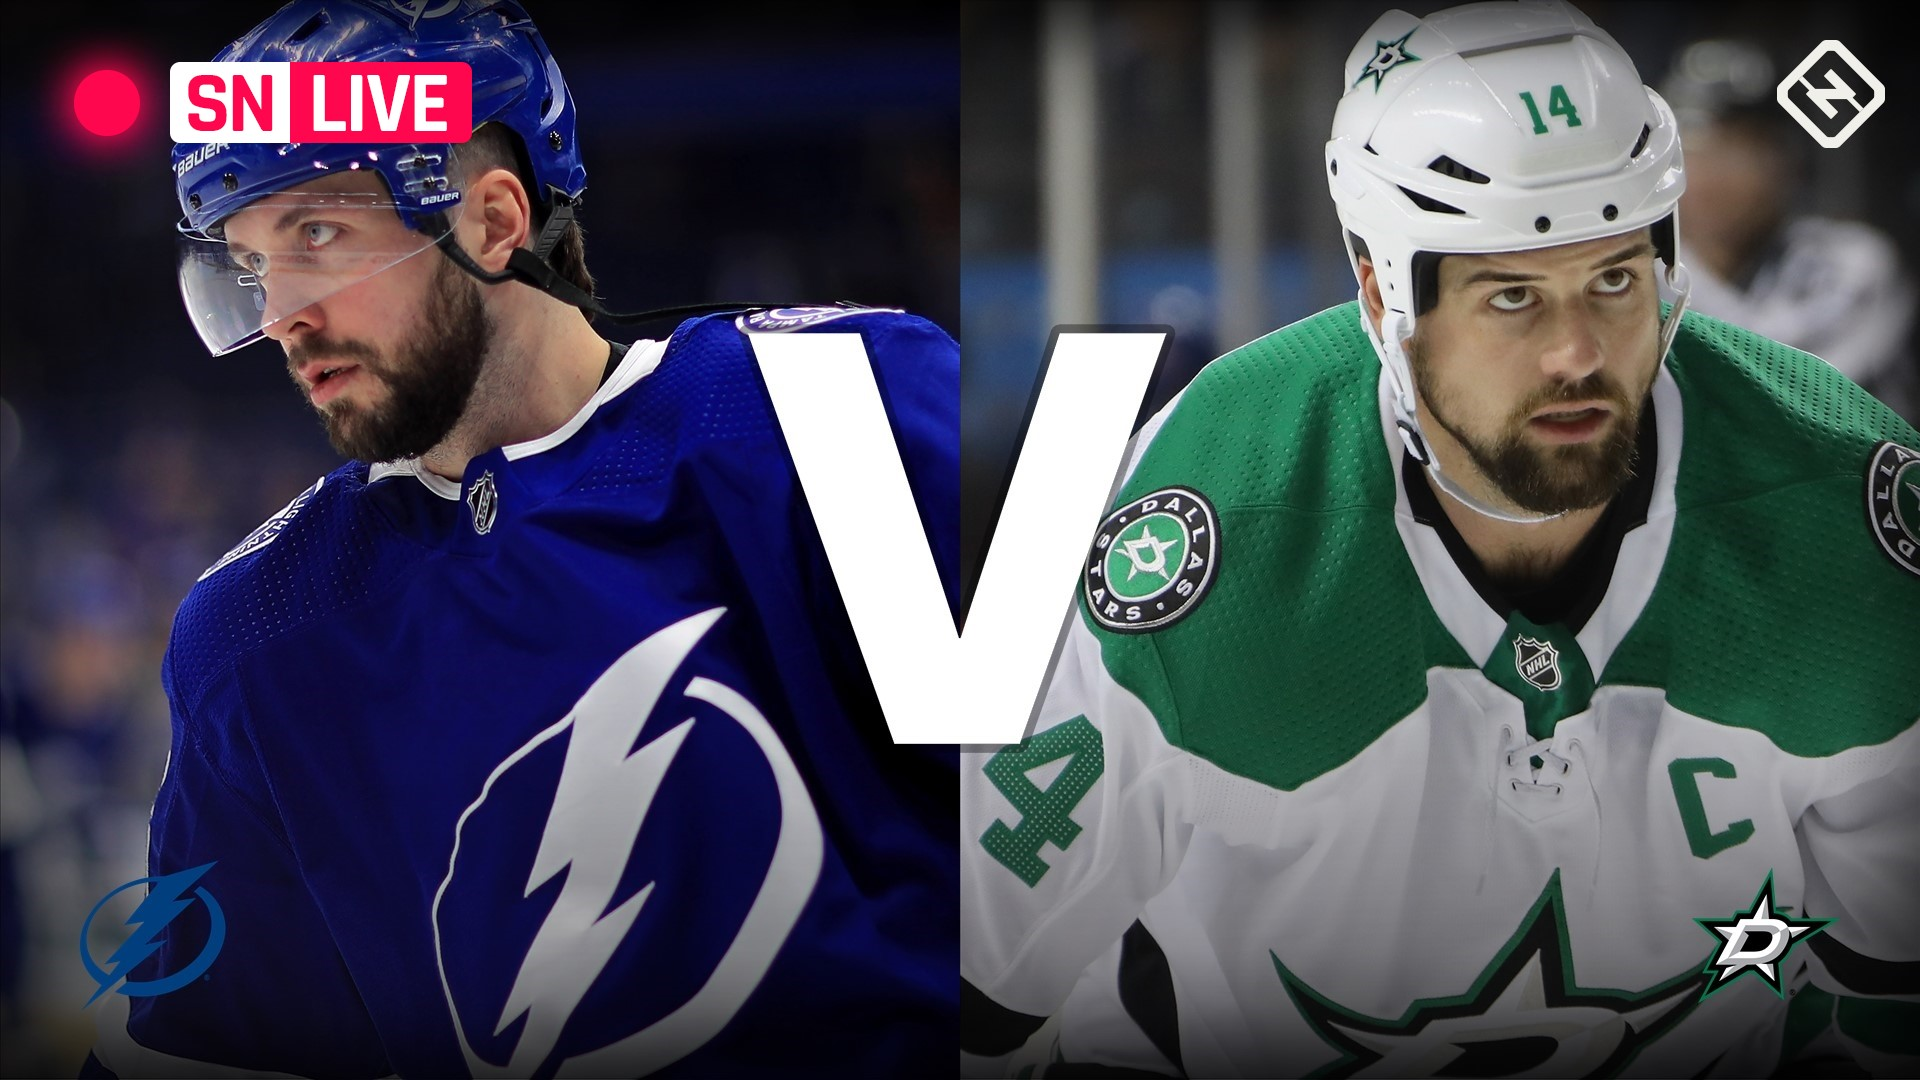 Lightning vs. Stars Game 5: Live score, updates, highlights from Stanley Cup Final